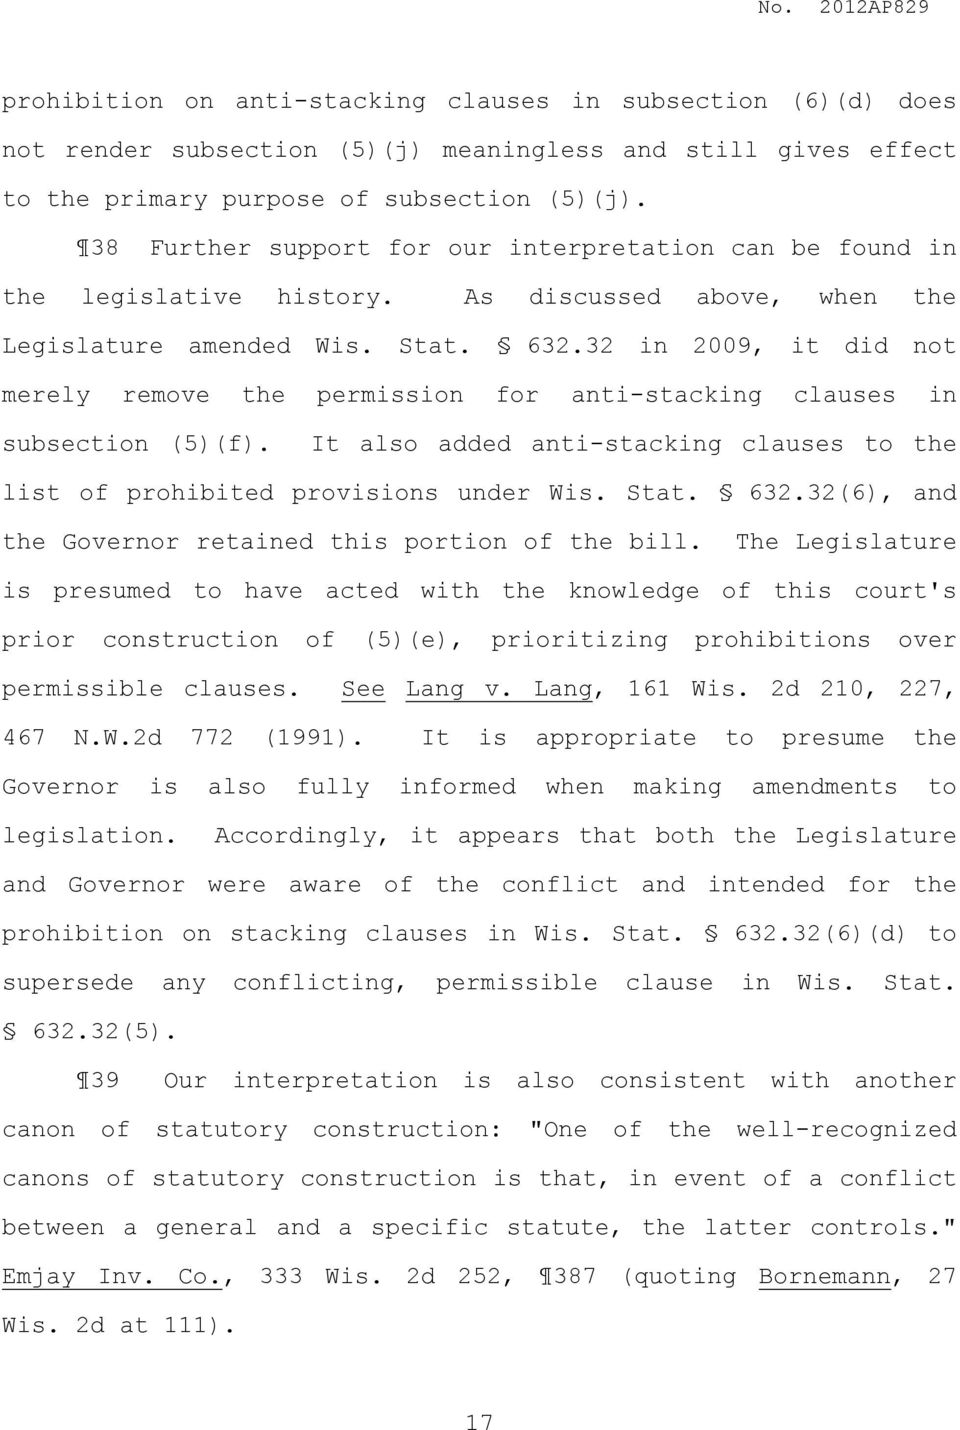 32 in 2009, it did not merely remove the permission for anti-stacking clauses in subsection (5)(f). It also added anti-stacking clauses to the list of prohibited provisions under Wis. Stat. 632.